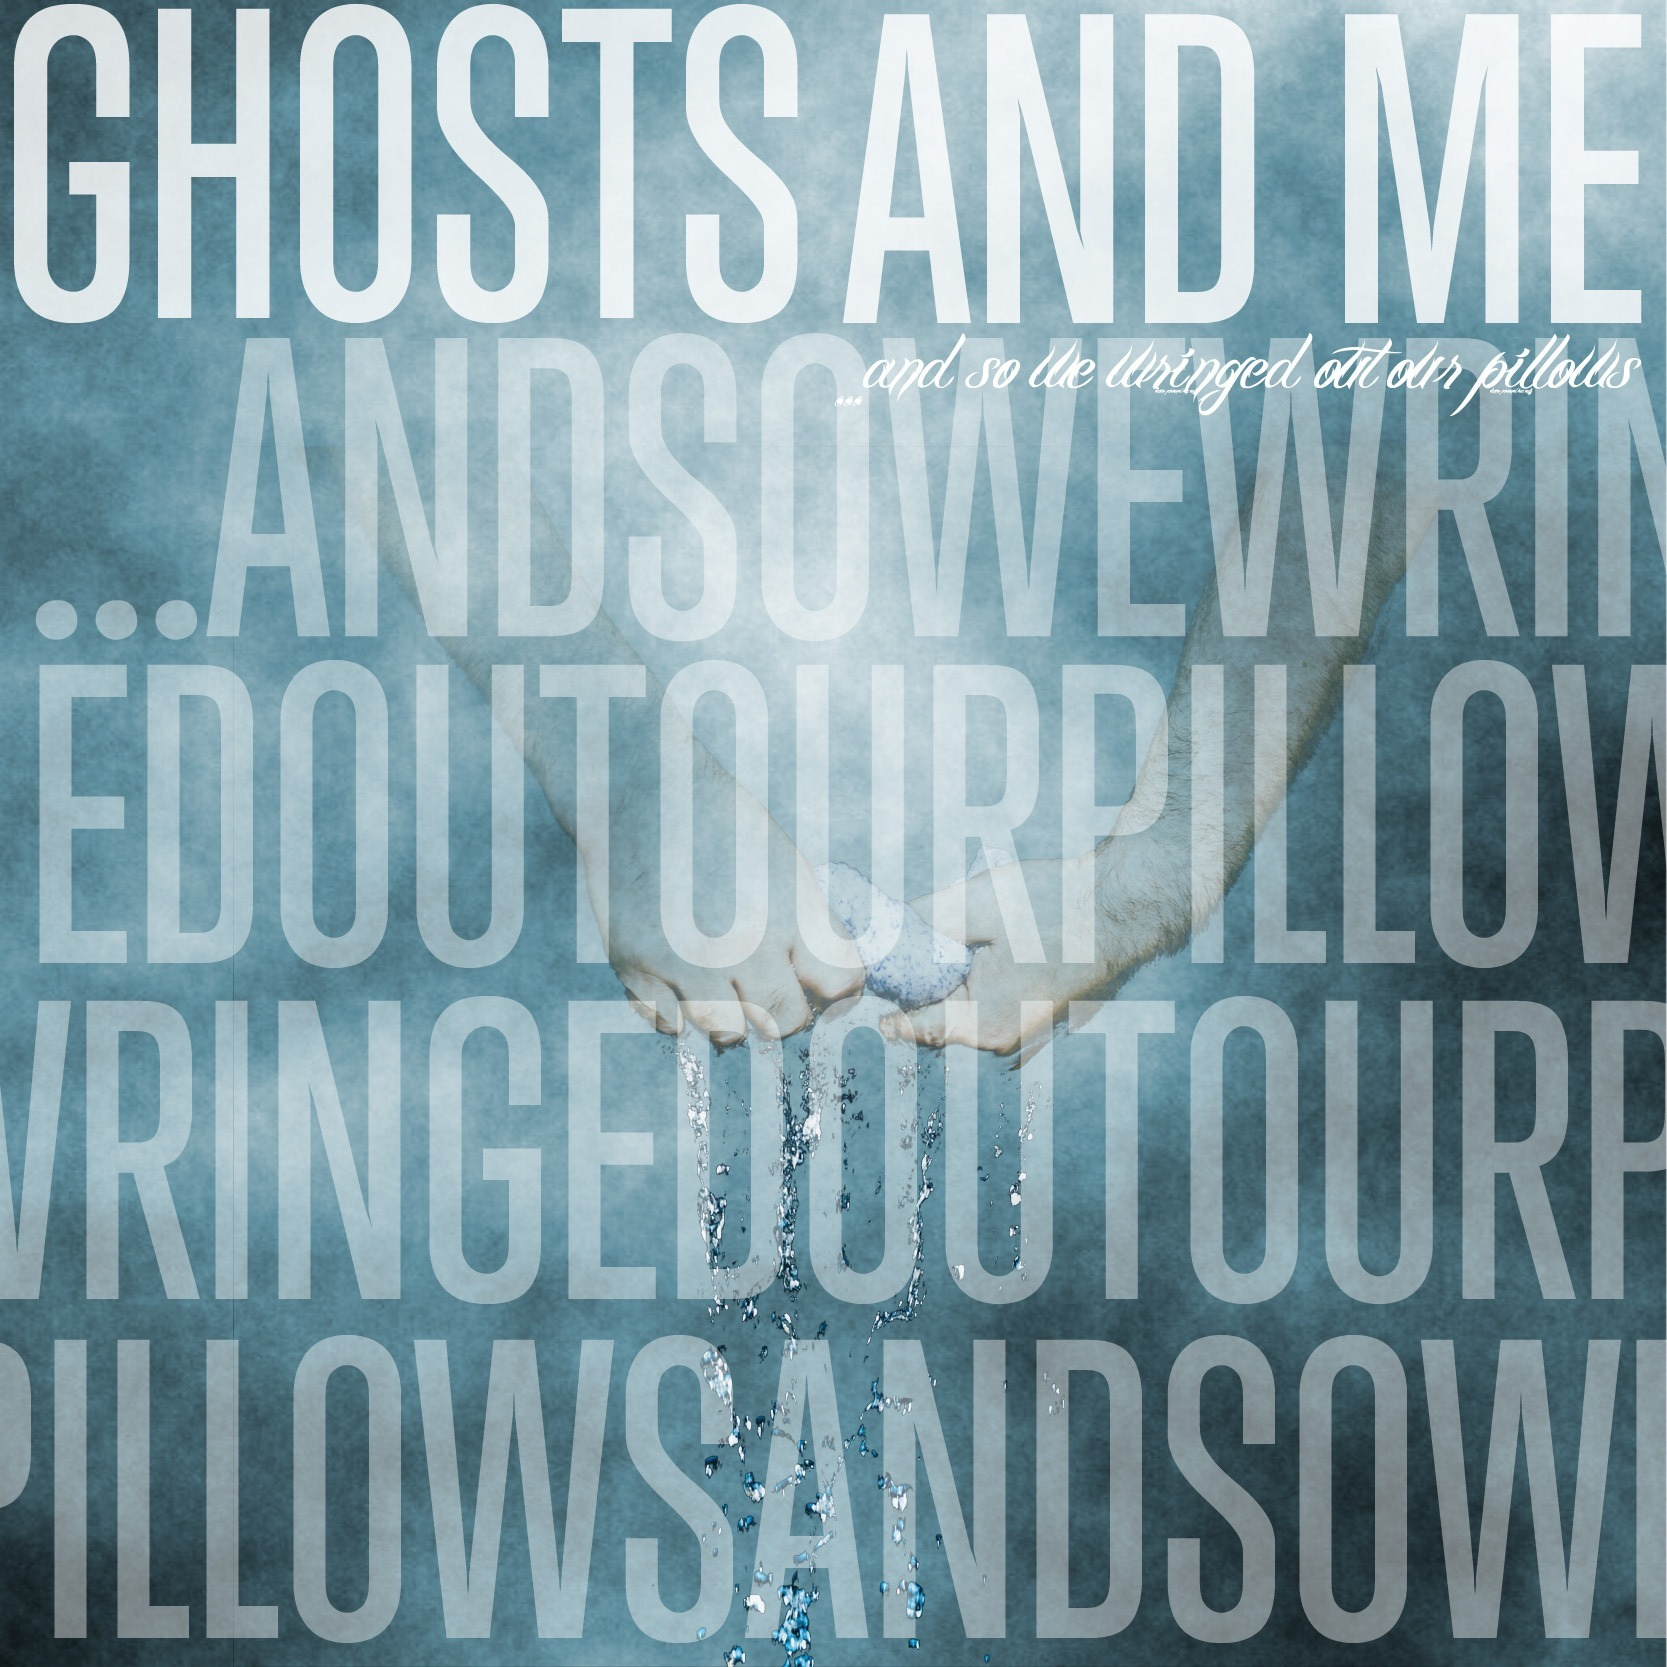 GHOSTS AND ME – And so we wringed out our pillows, 2012